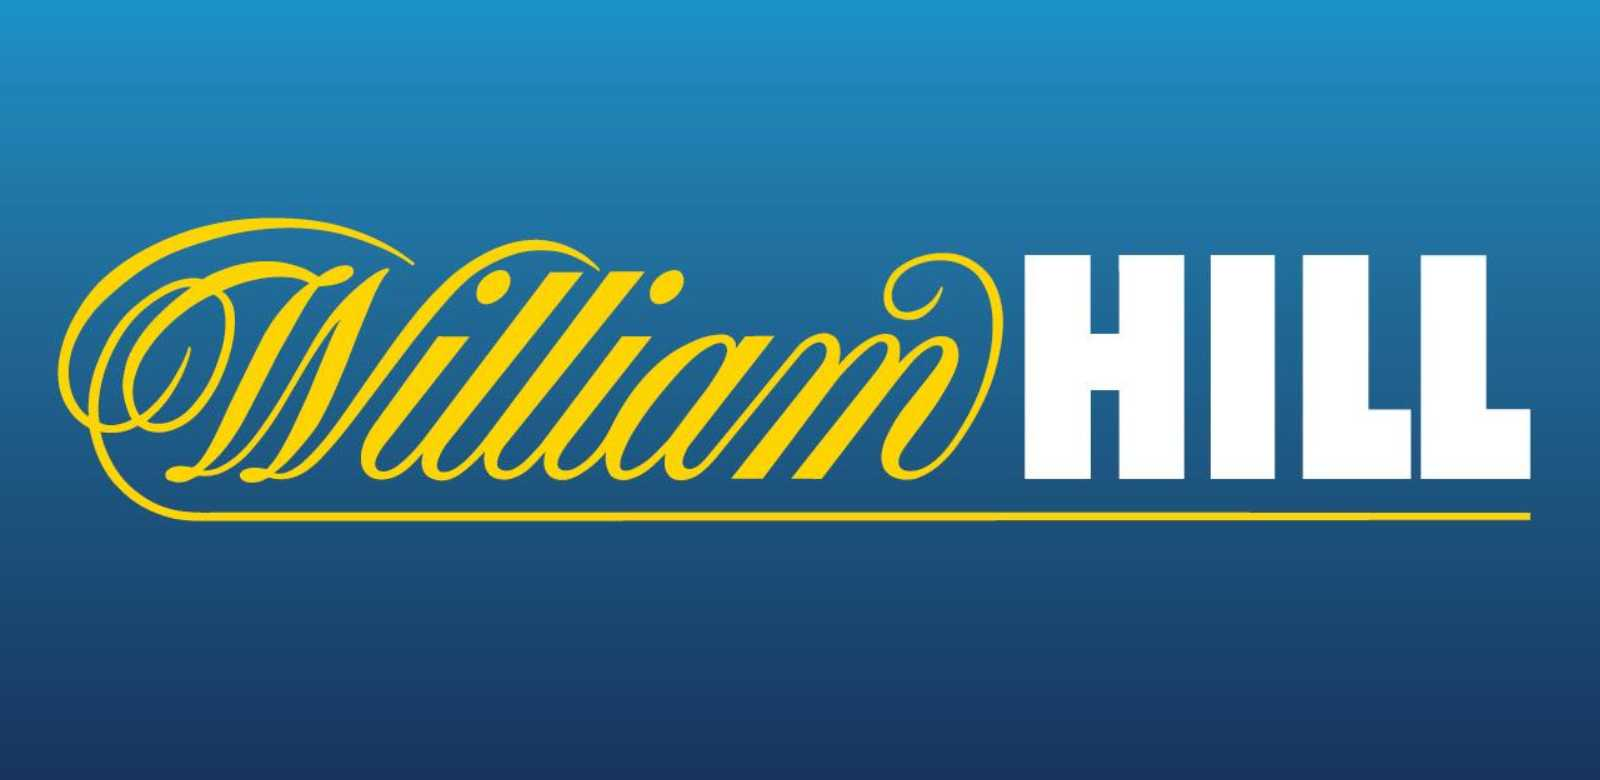 BC William Hill: login to your account from India.